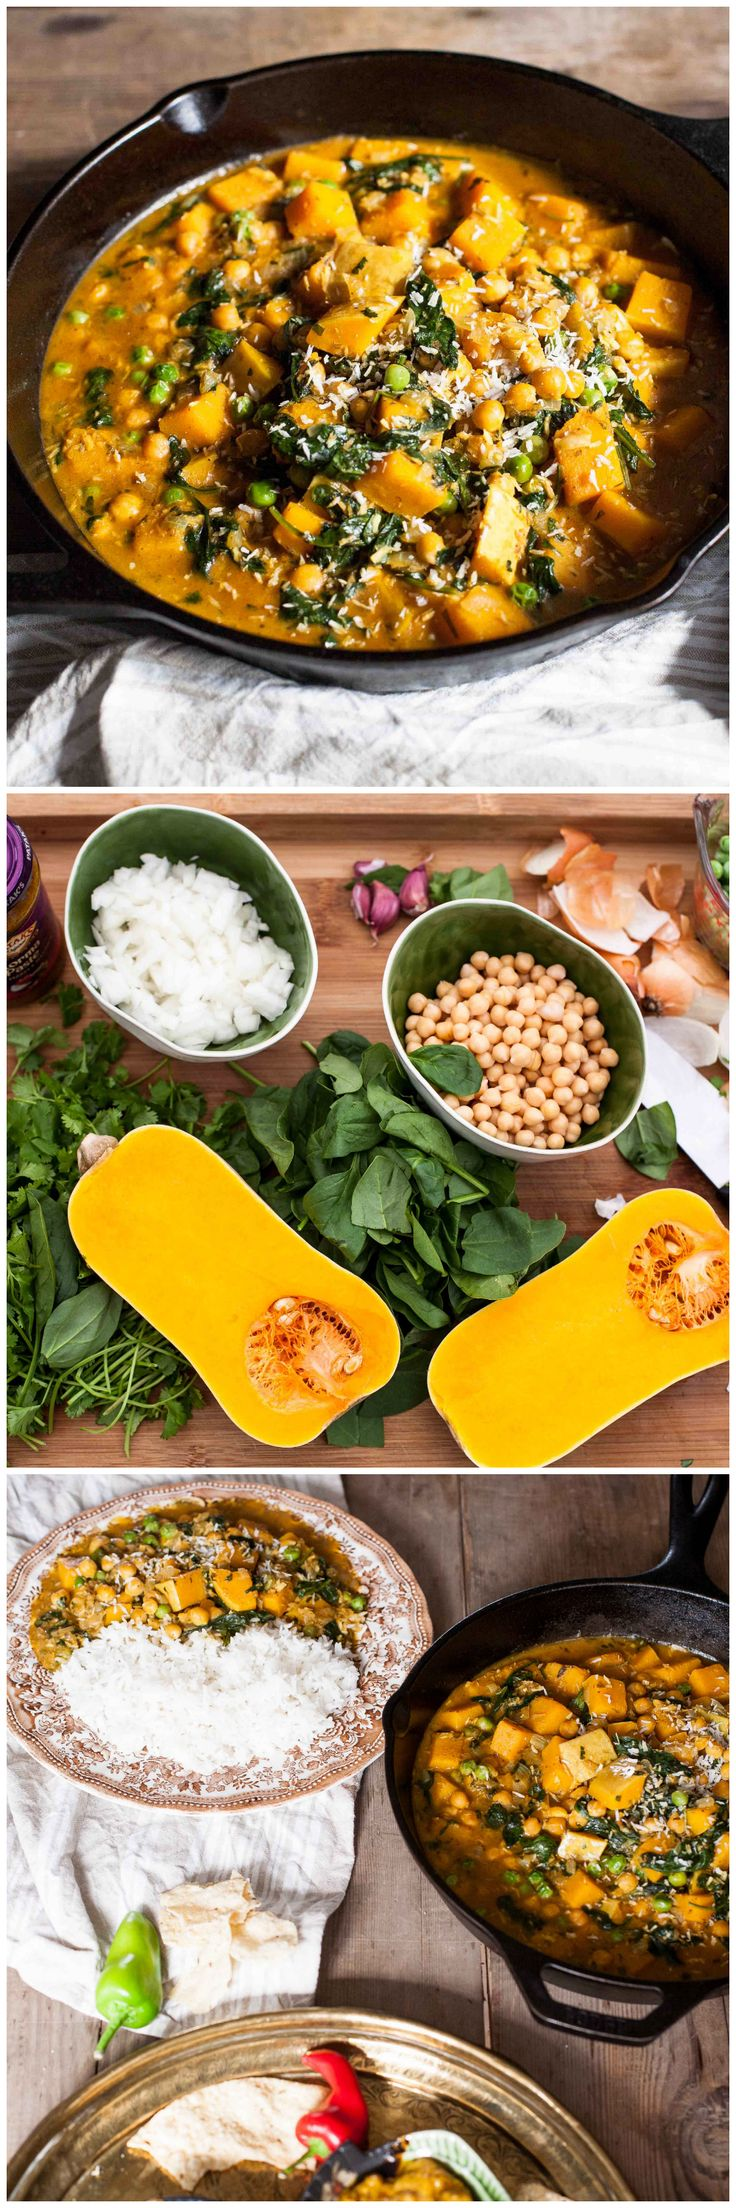 ~ Chickpea and Butternut Squash Curry ~